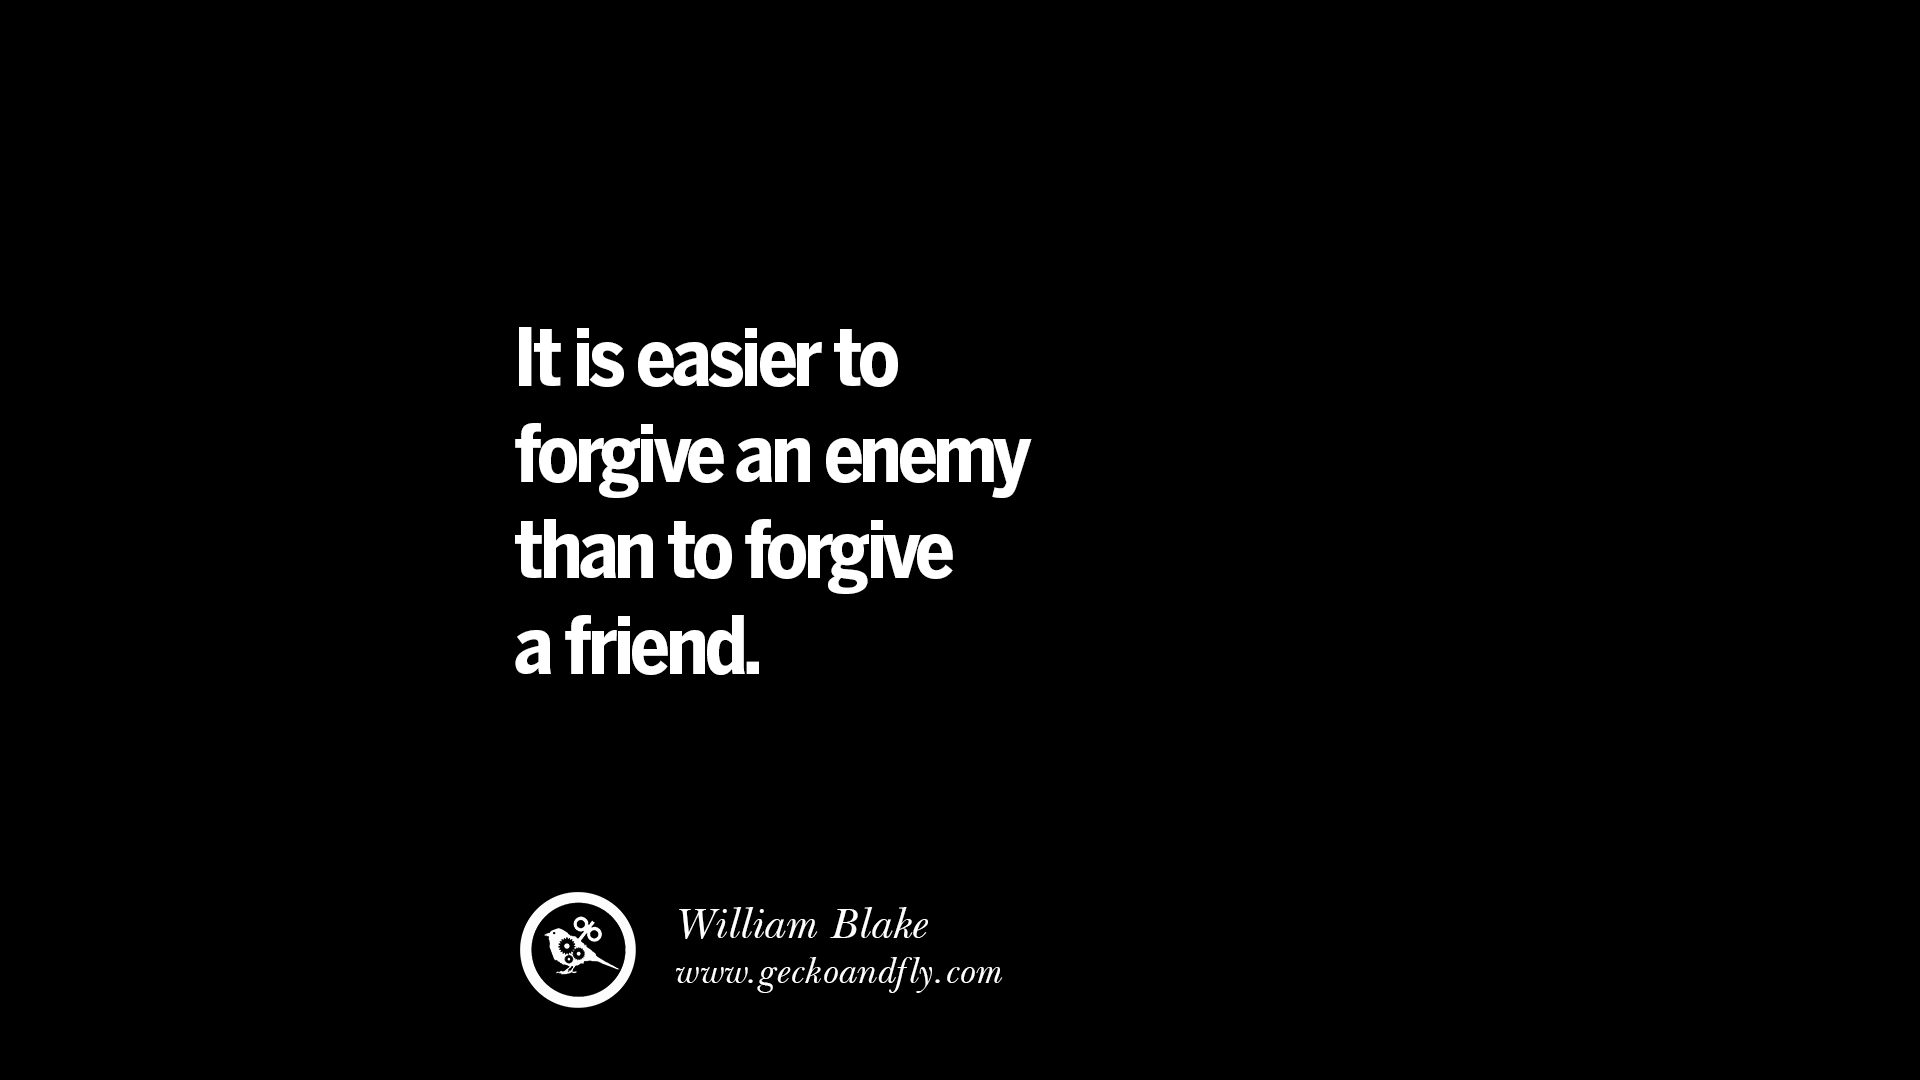 Love Forgiveness Quotes Inspiration 25 Quotes On Friendship Trust Love And Betrayal  Geckoandfly 2018